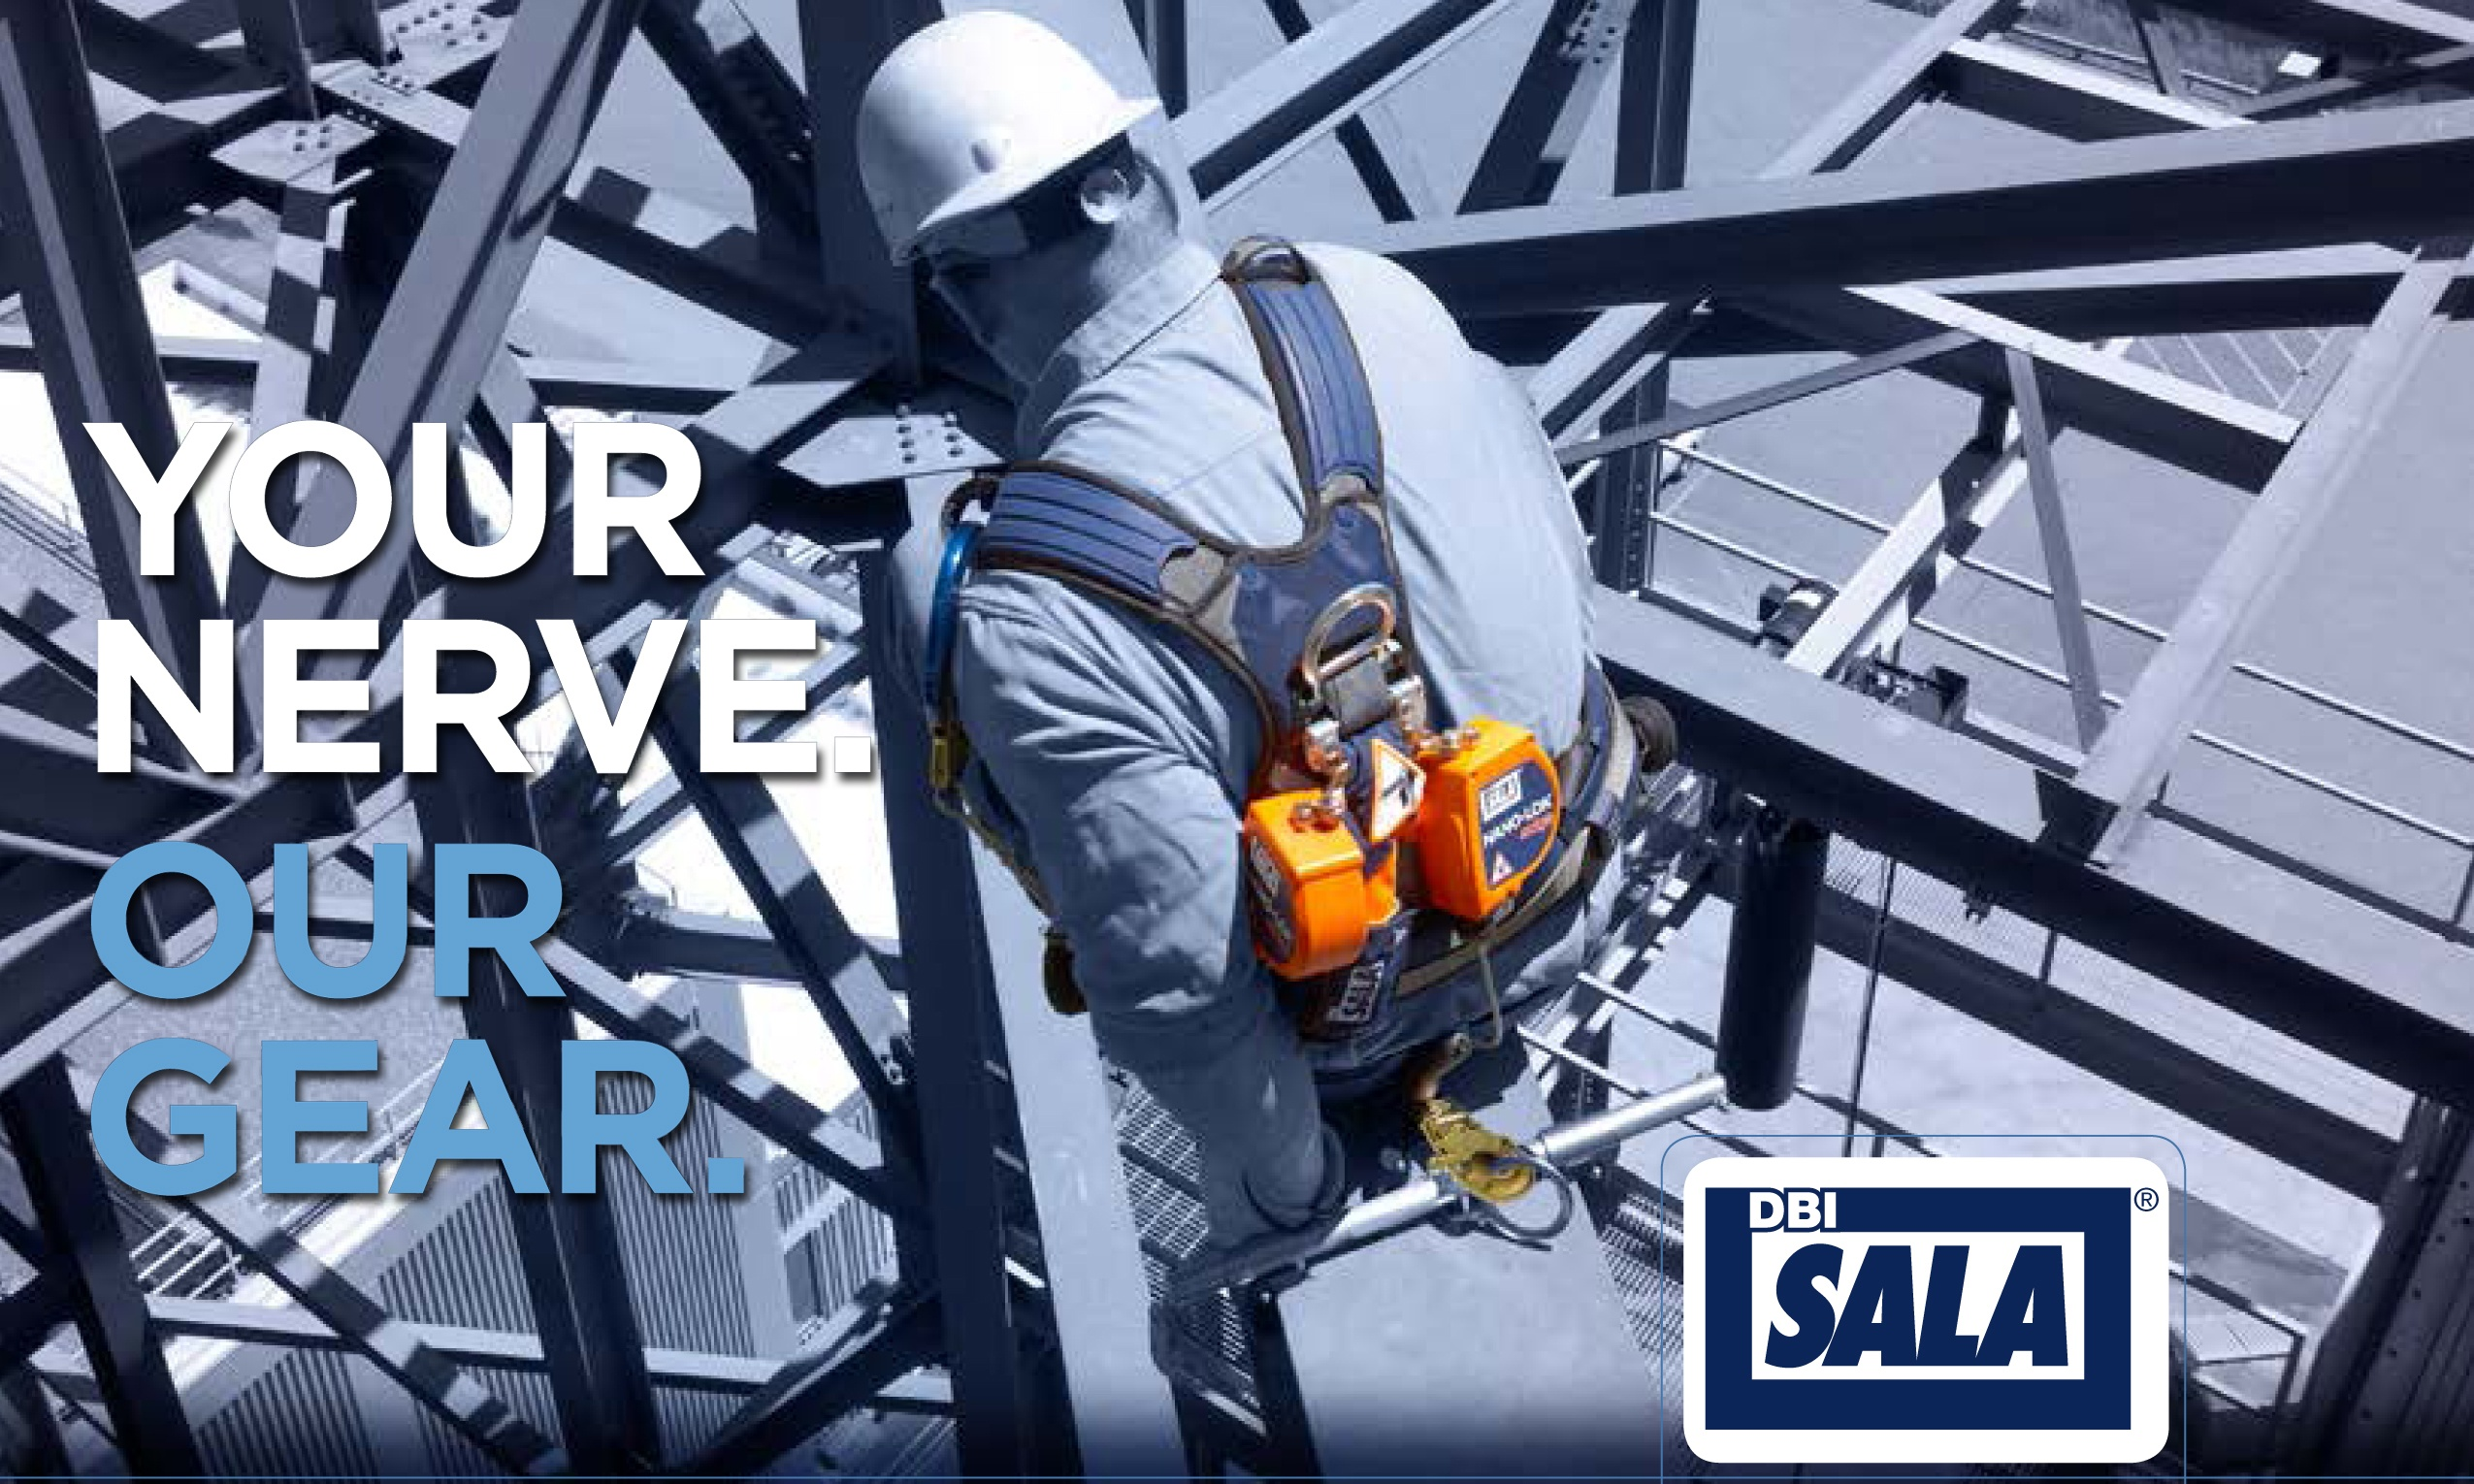 Capital Safety and ORR Safety PPE